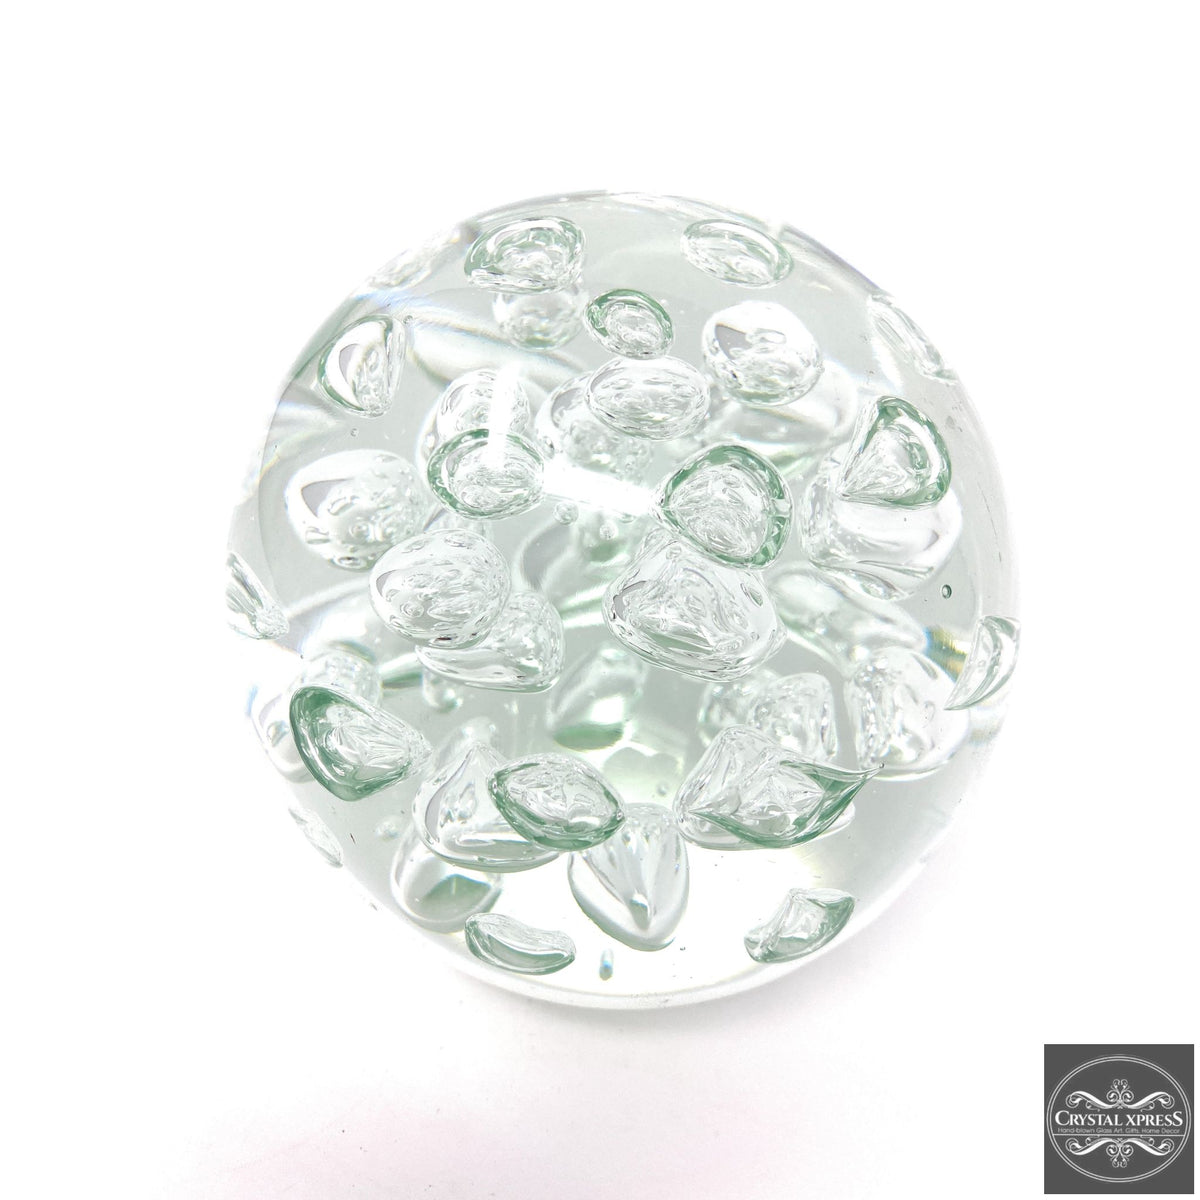 Clear White Glass Paperweight 7 inch DiameterCrystal Xpress